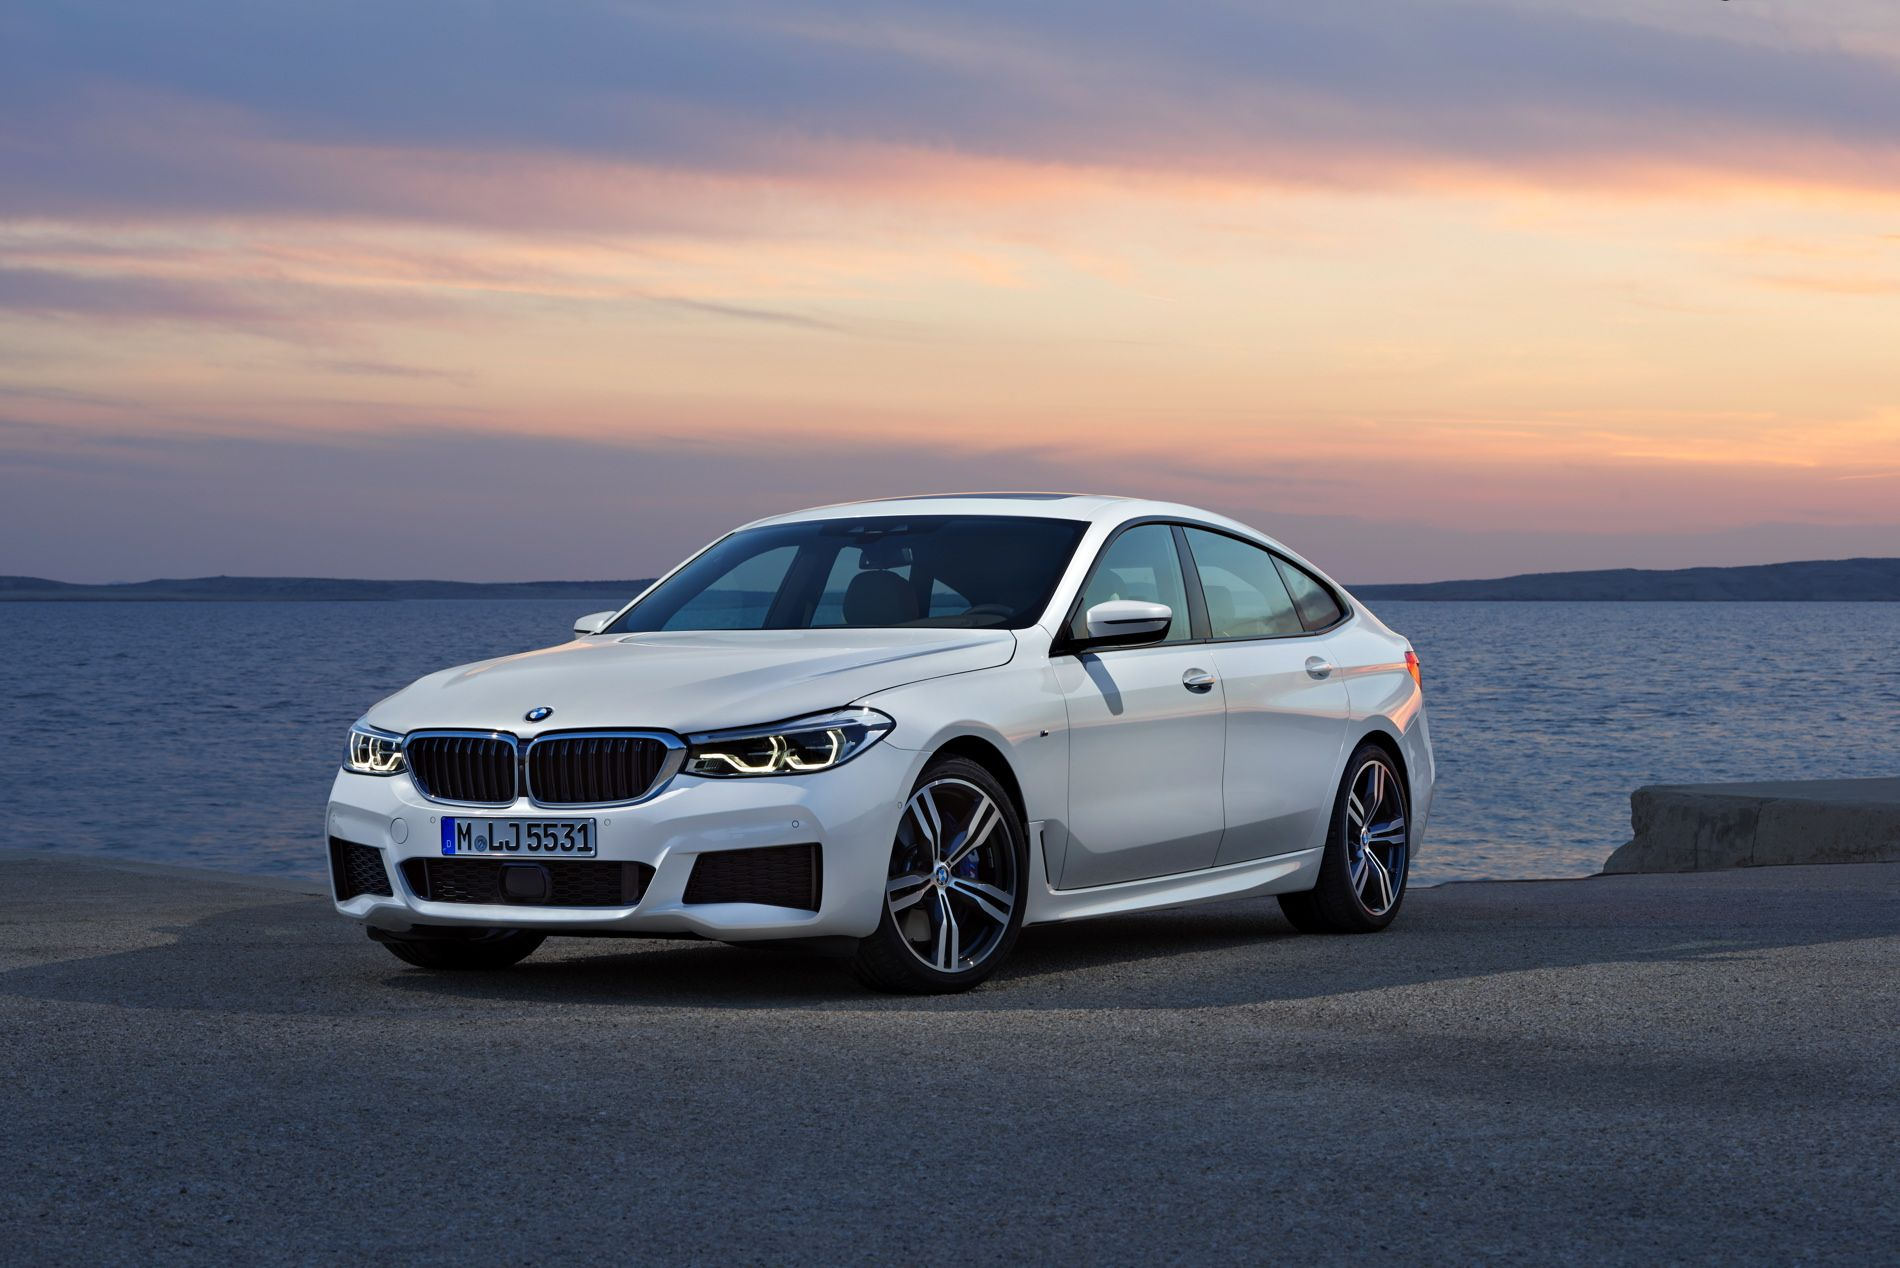 The Bmw 6 Series Gt Will Come With The Copilot System As Standard